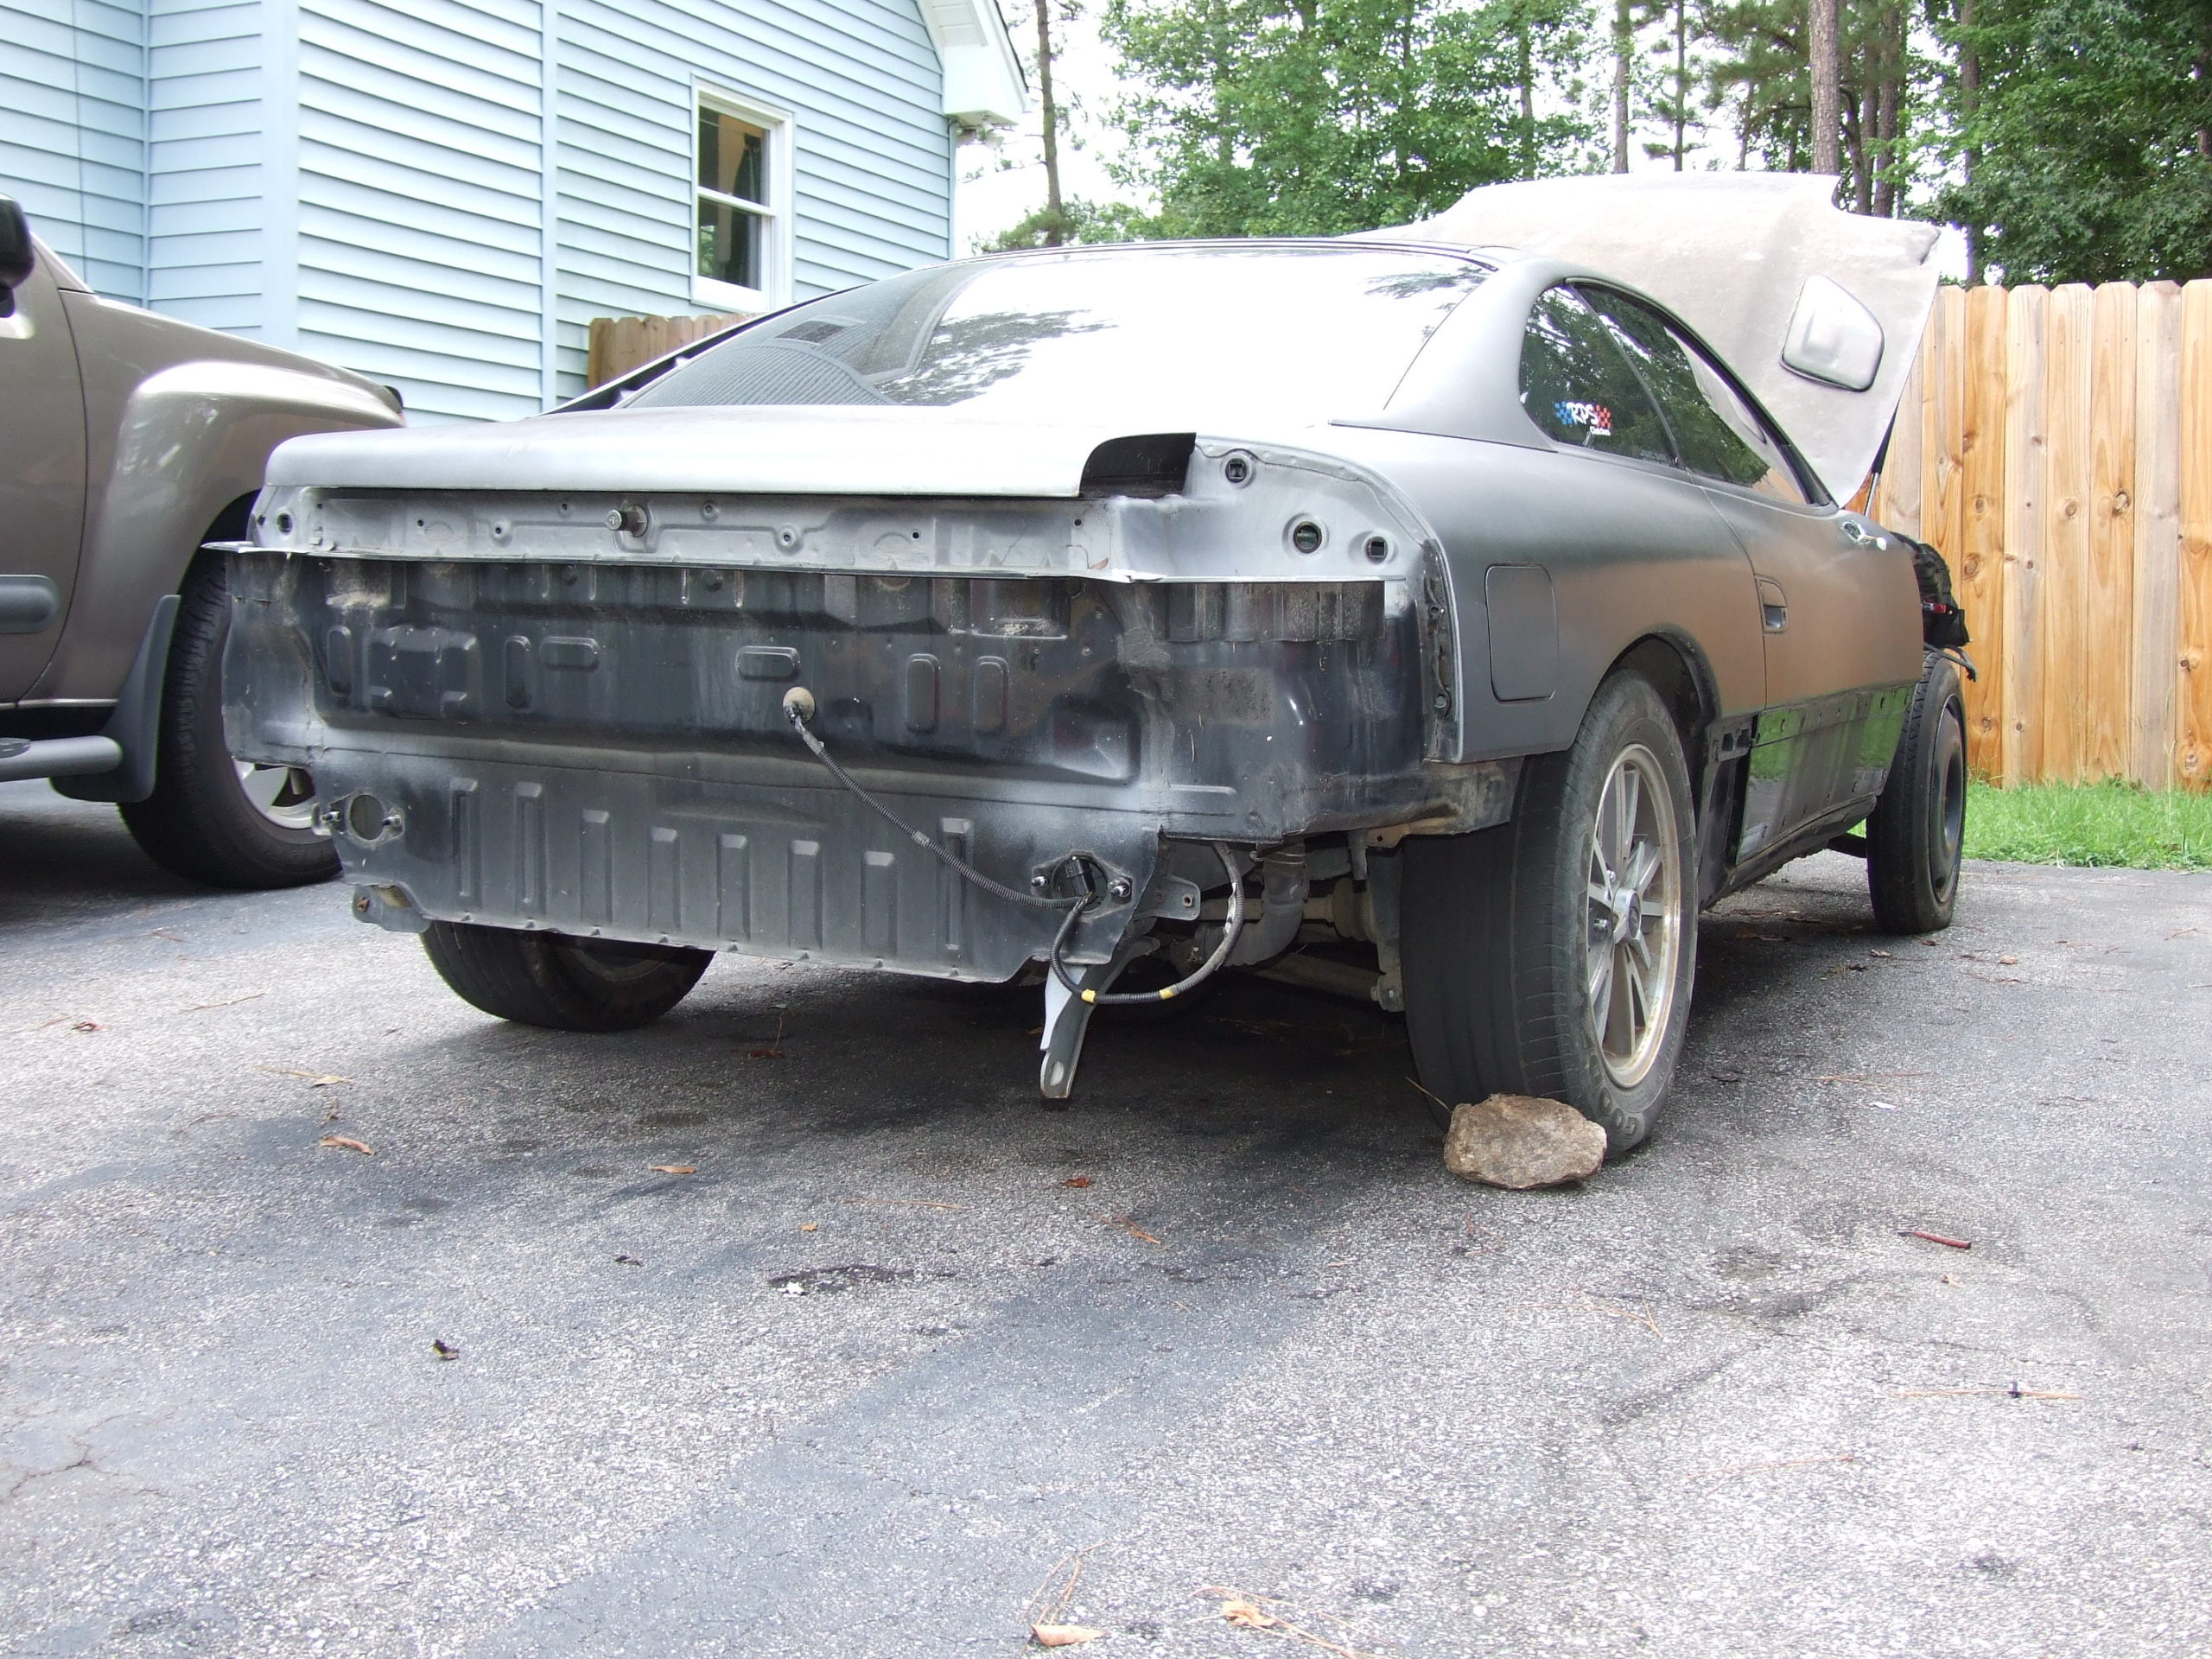 No bumpers, sideskirts, fenders, etc. The body was straight for the most part.